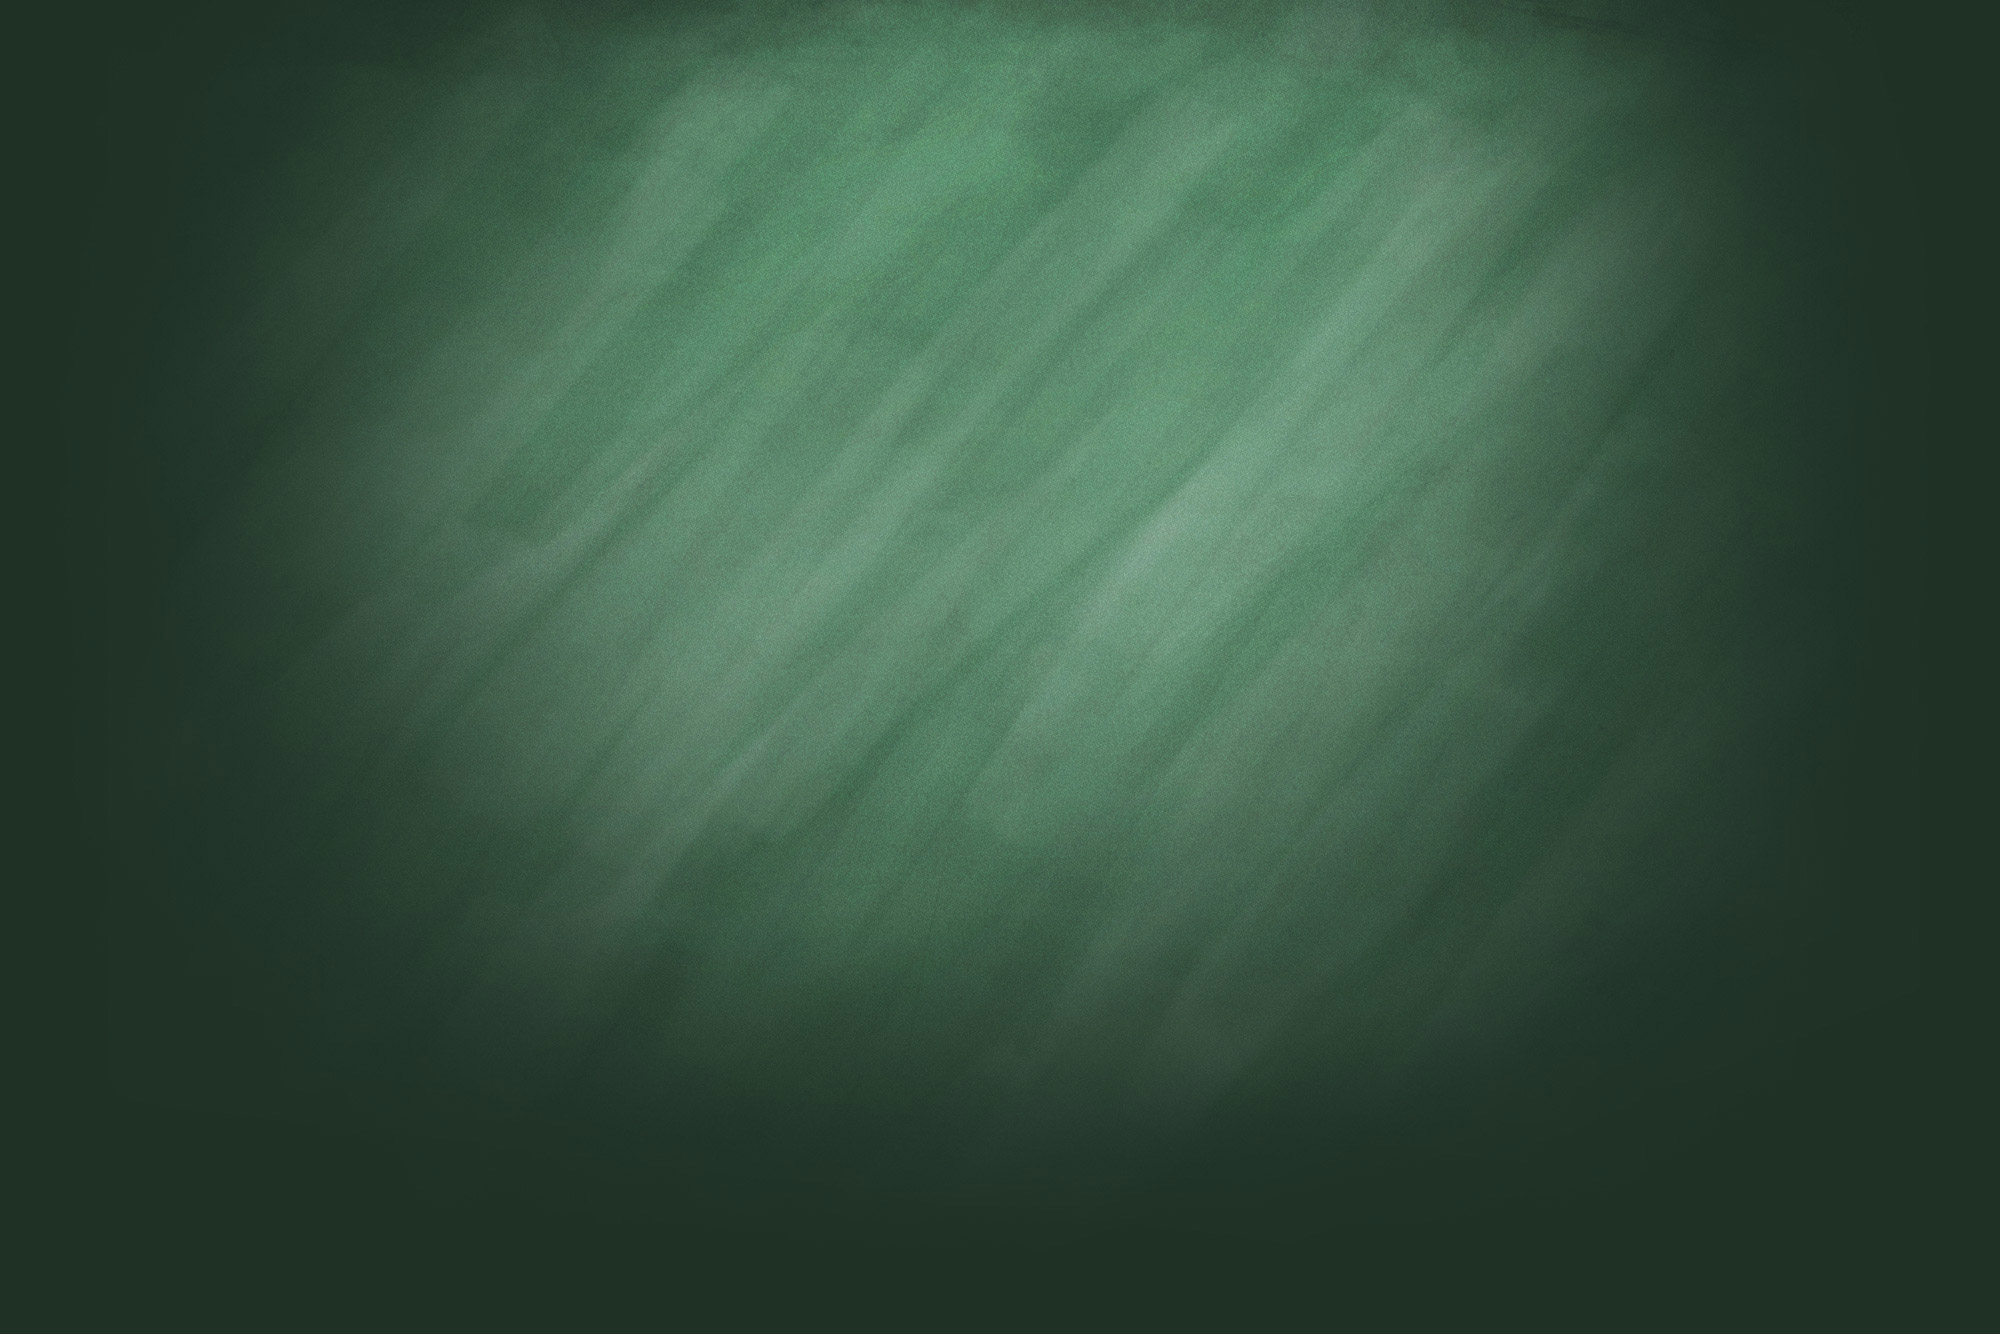 chalkboard background green